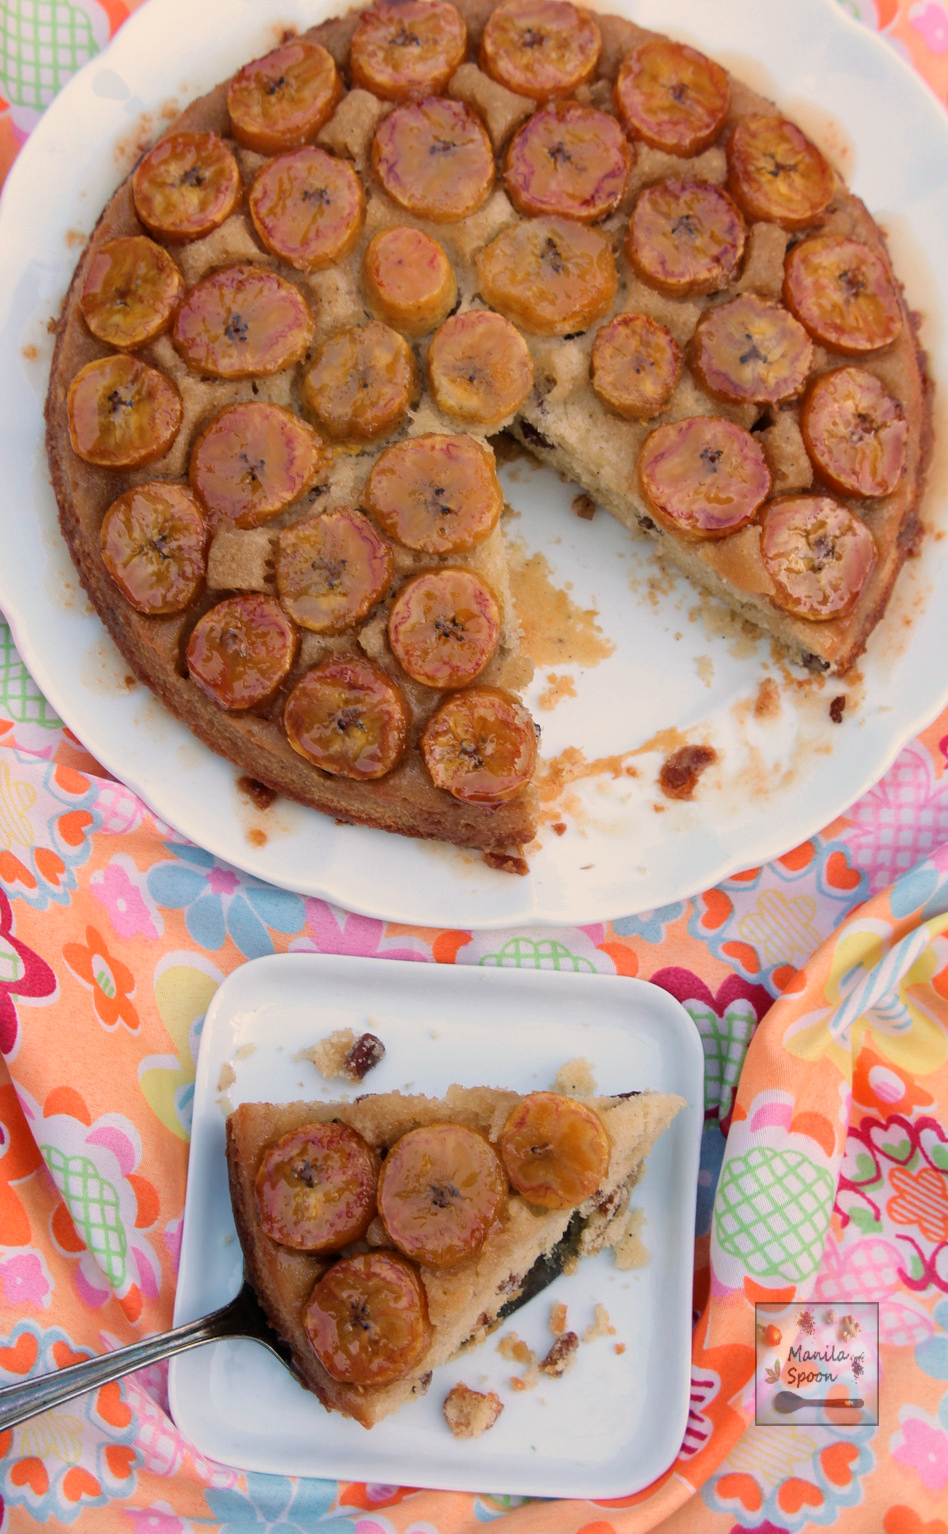 Use sweet ripe bananas or plantains to make this light, super-moist and delicious upside down cake!